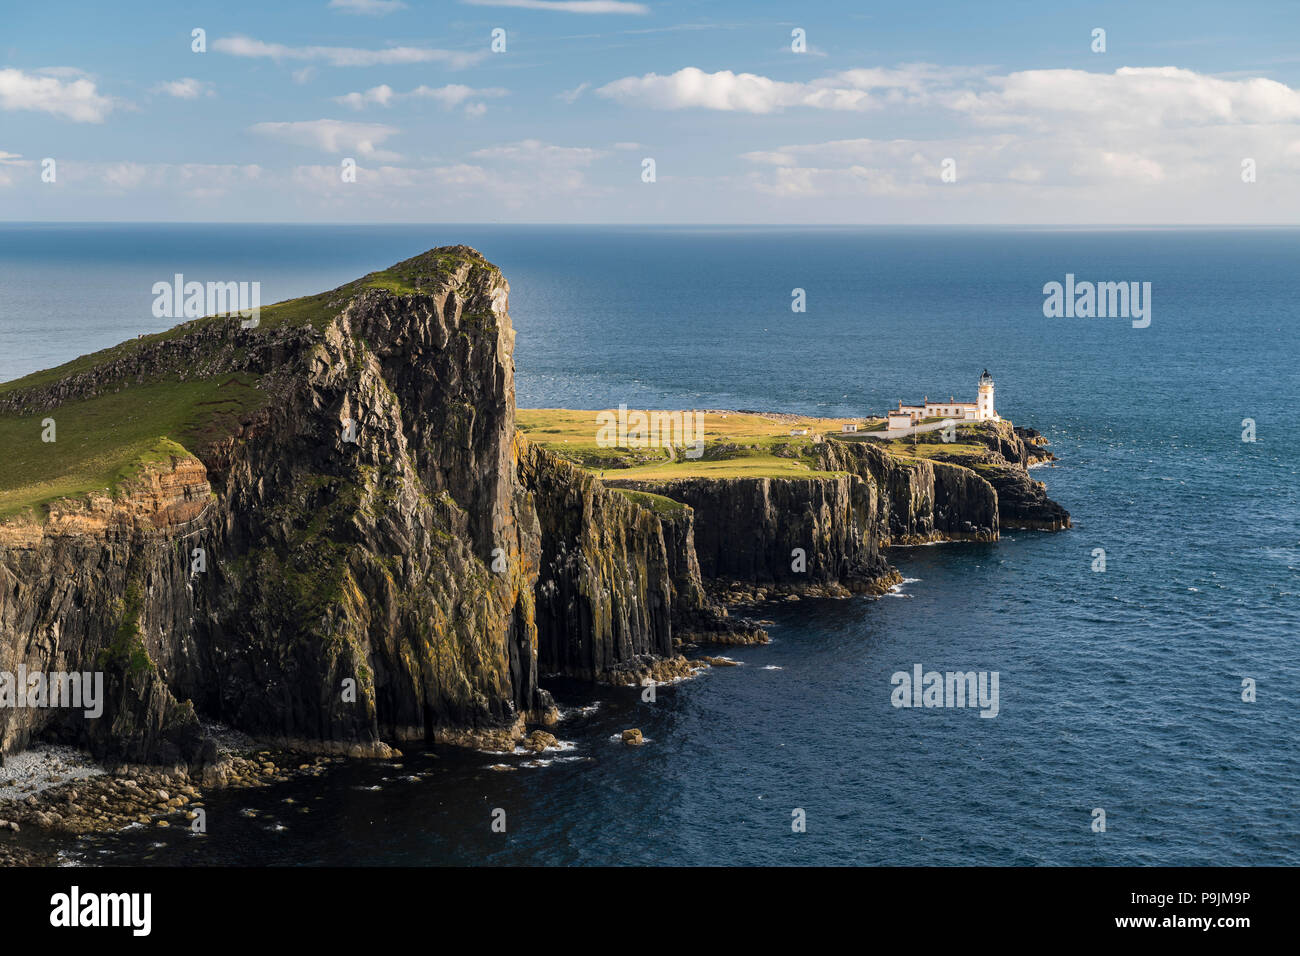 Neist Point, Lighthouse, Isle of Skye, Inner Hebrides, Scotland, United Kingdom Stock Photo